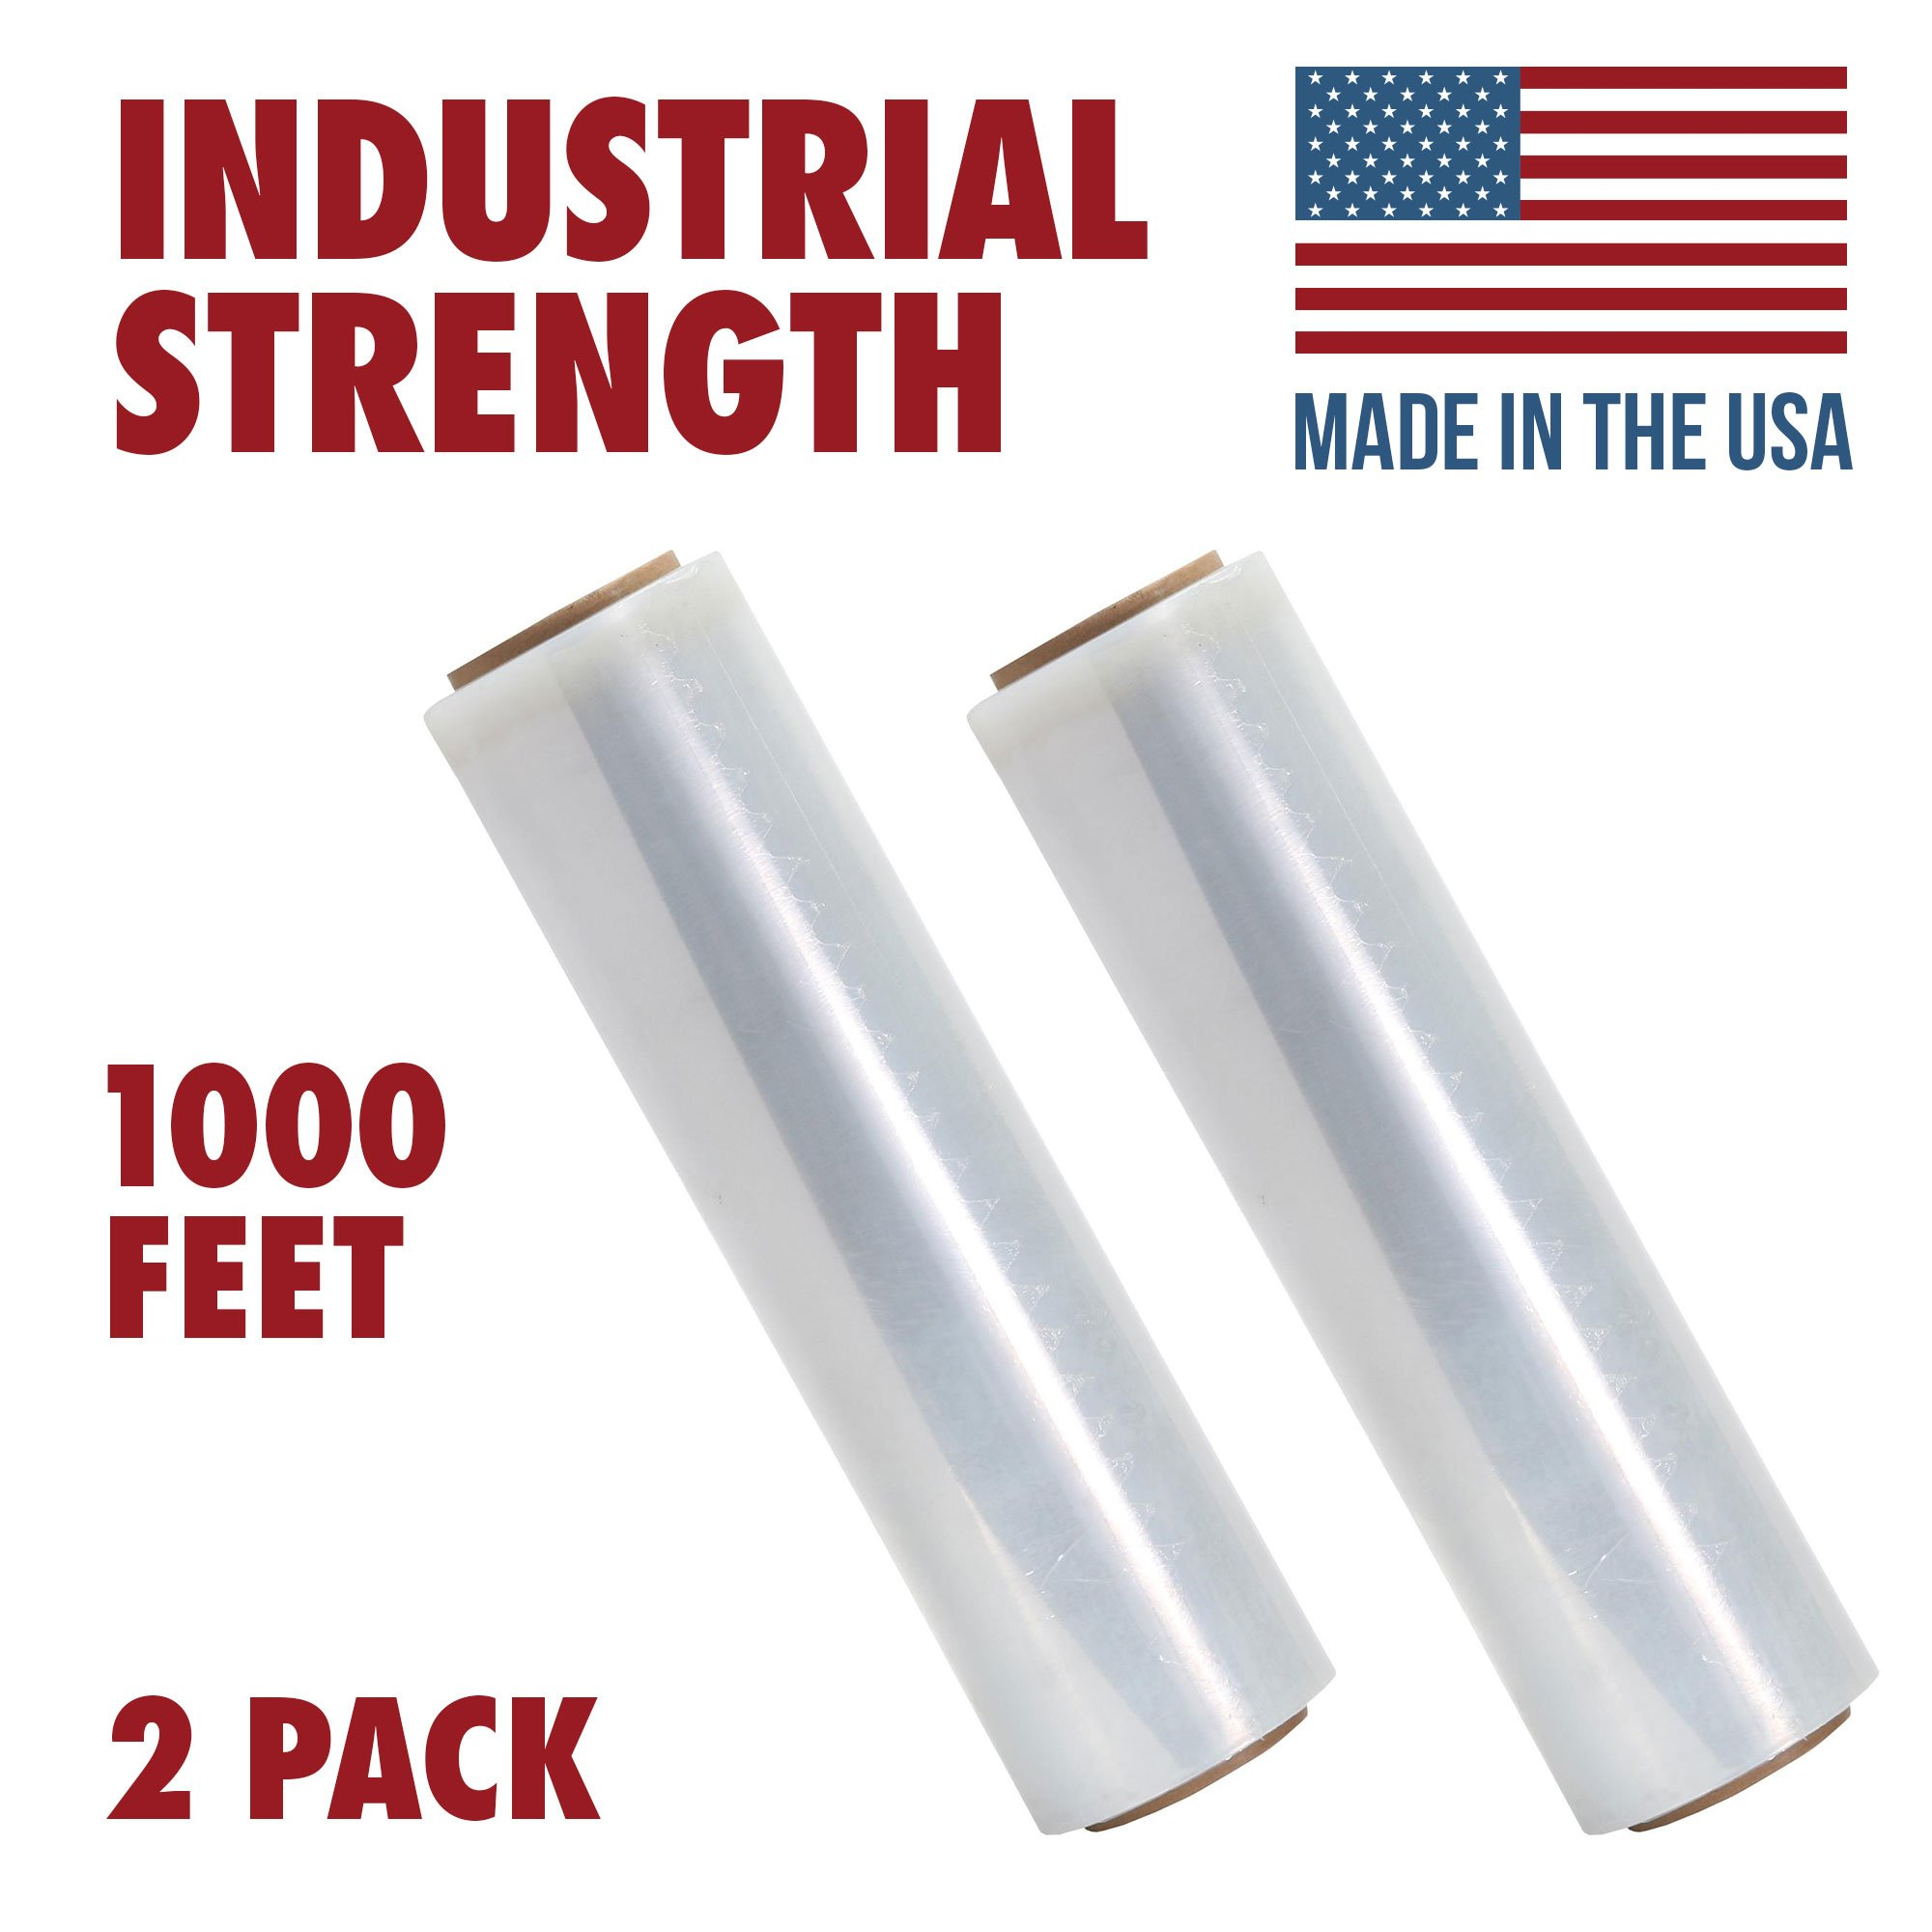 18 X 1000 Tough Pallet Shrink Wrap, 80 Gauge Industrial Strength Plastic Film, Commercial Grade Strength Film, Moving & Stretch Packing Wrap, For Furniture, Boxes, Pallets (2-Pack) by Ox Plastics